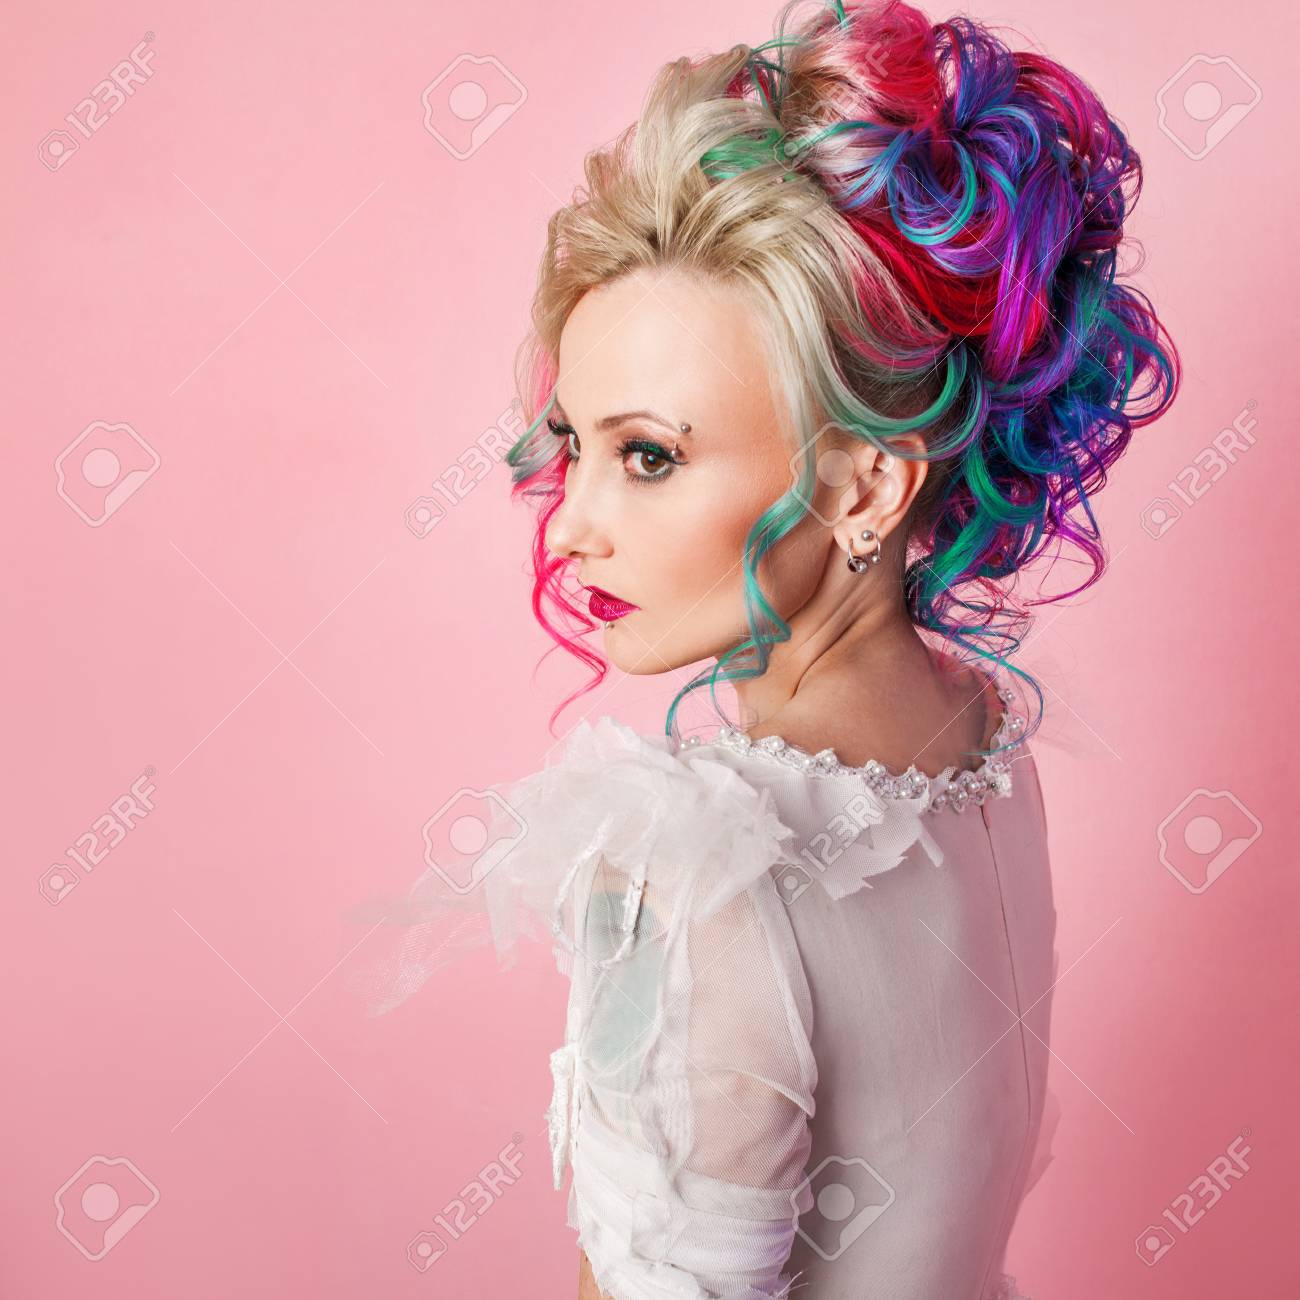 Cool Young Woman With Colored Hair Stylish Hairstyle Informal